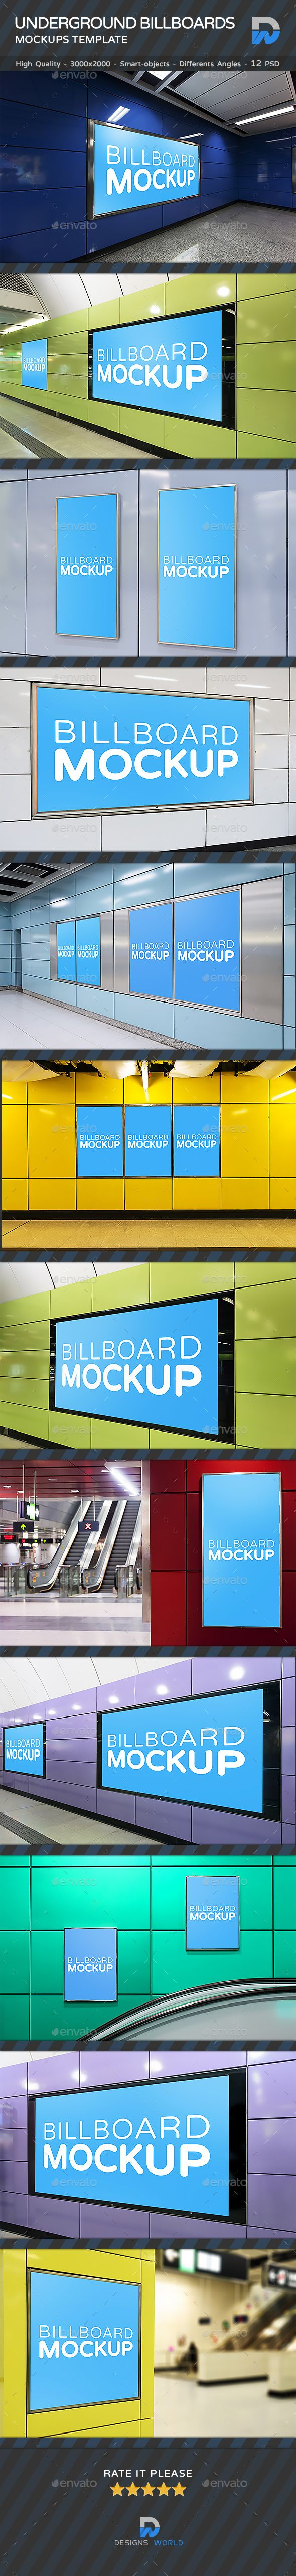 Underground Advertising Mock-ups